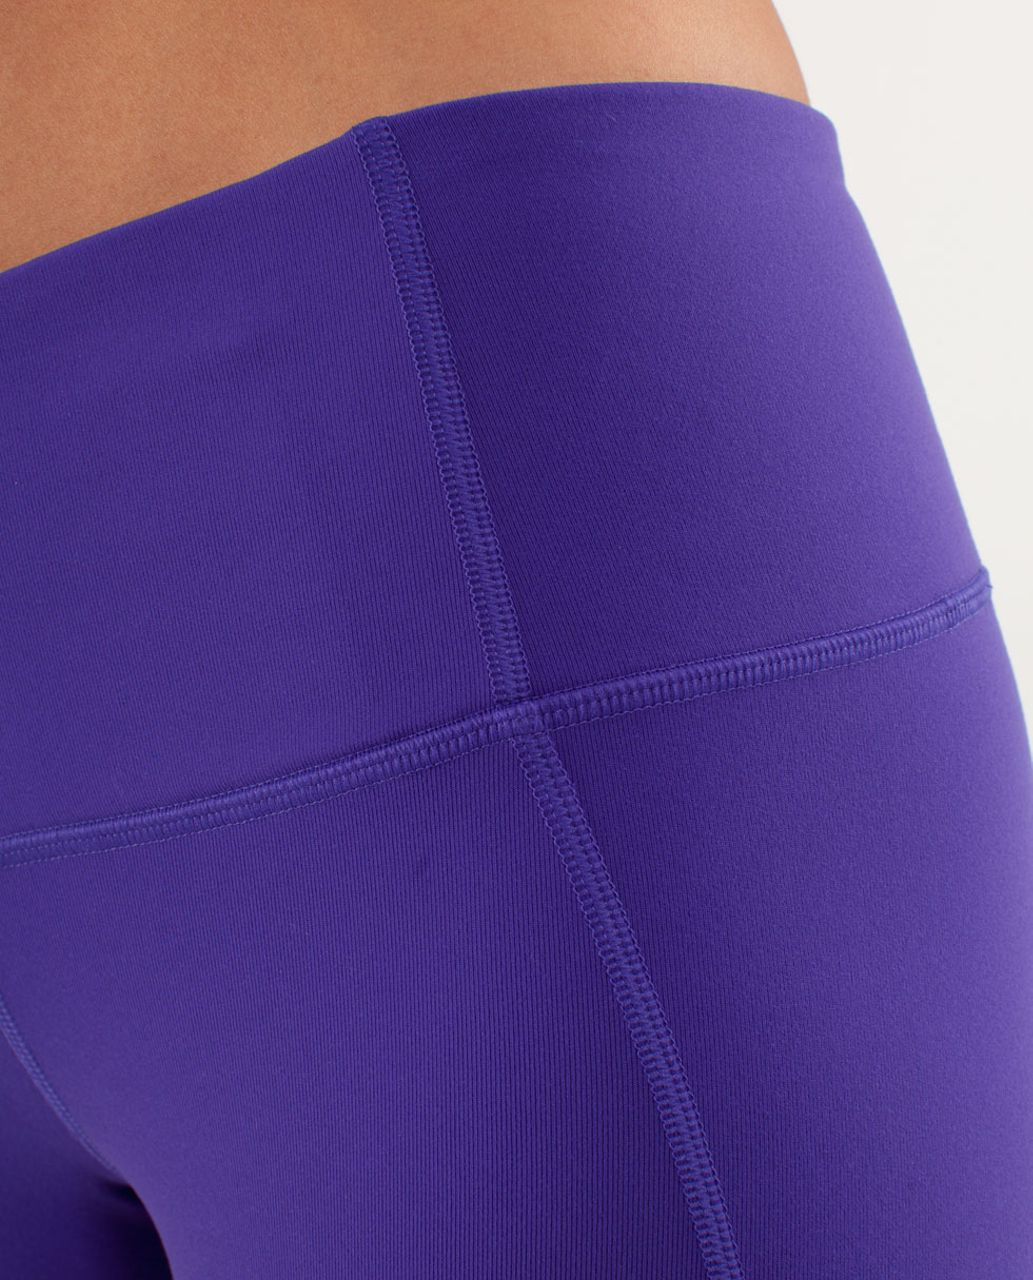 Lululemon Gather & Crow Crop - Bruised Berry / High Noon Dot Lilac / Black